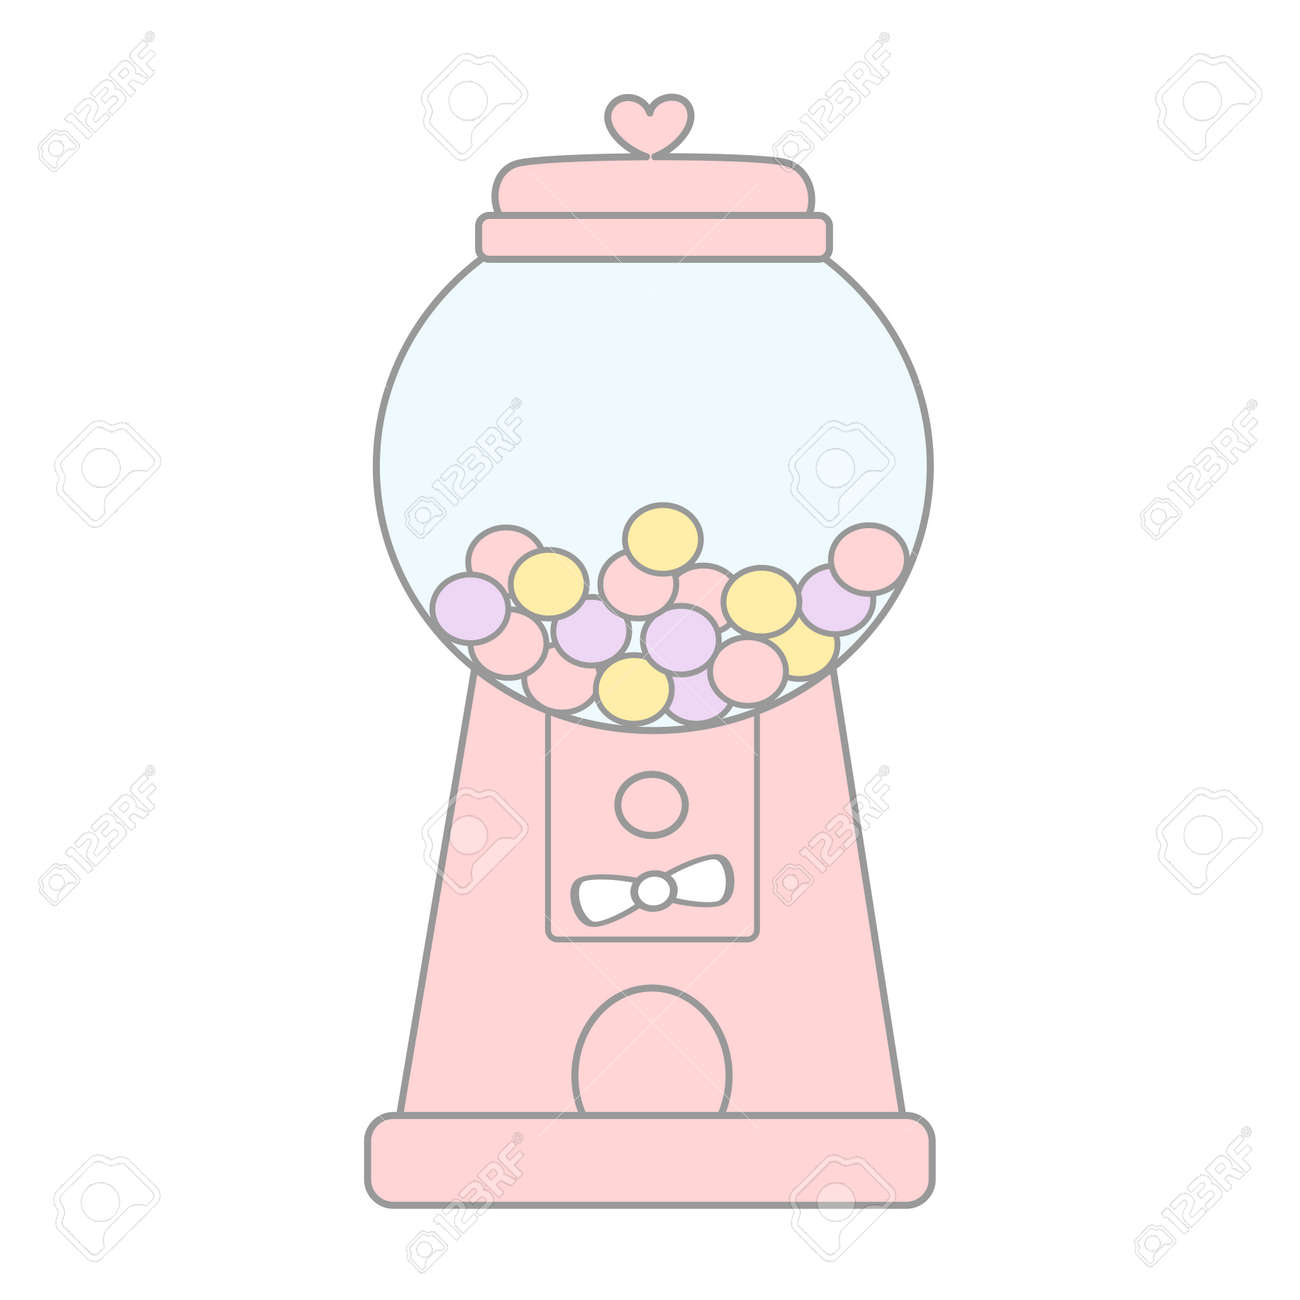 hight resolution of cartoon cute pink gumball machine vector illustration isolated on white background stock vector 70446070